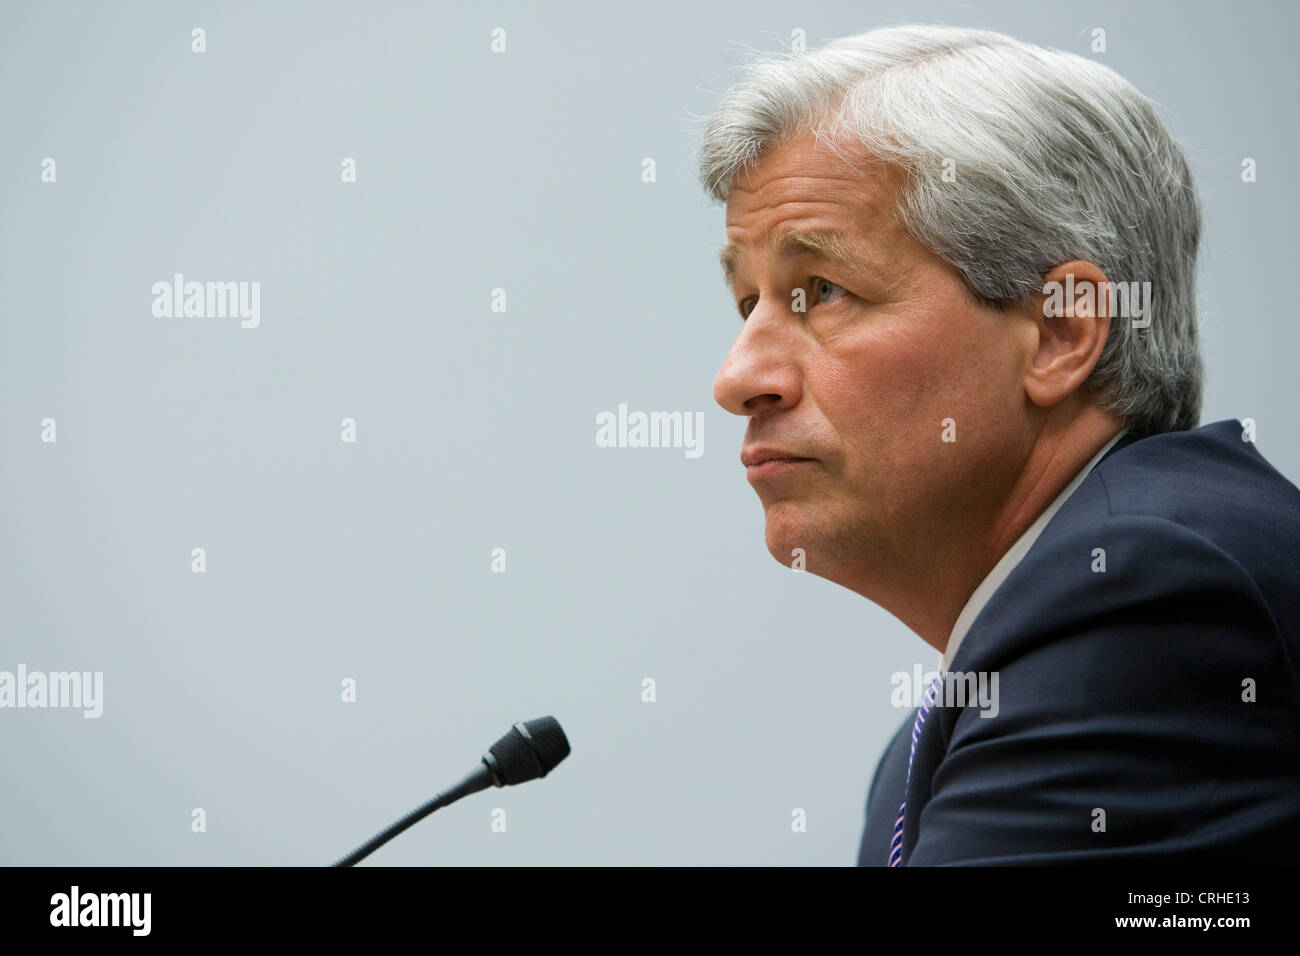 Jamie Dimon, chairman of the board, president and CEO of JPMorgan Chase & Co. - Stock Image